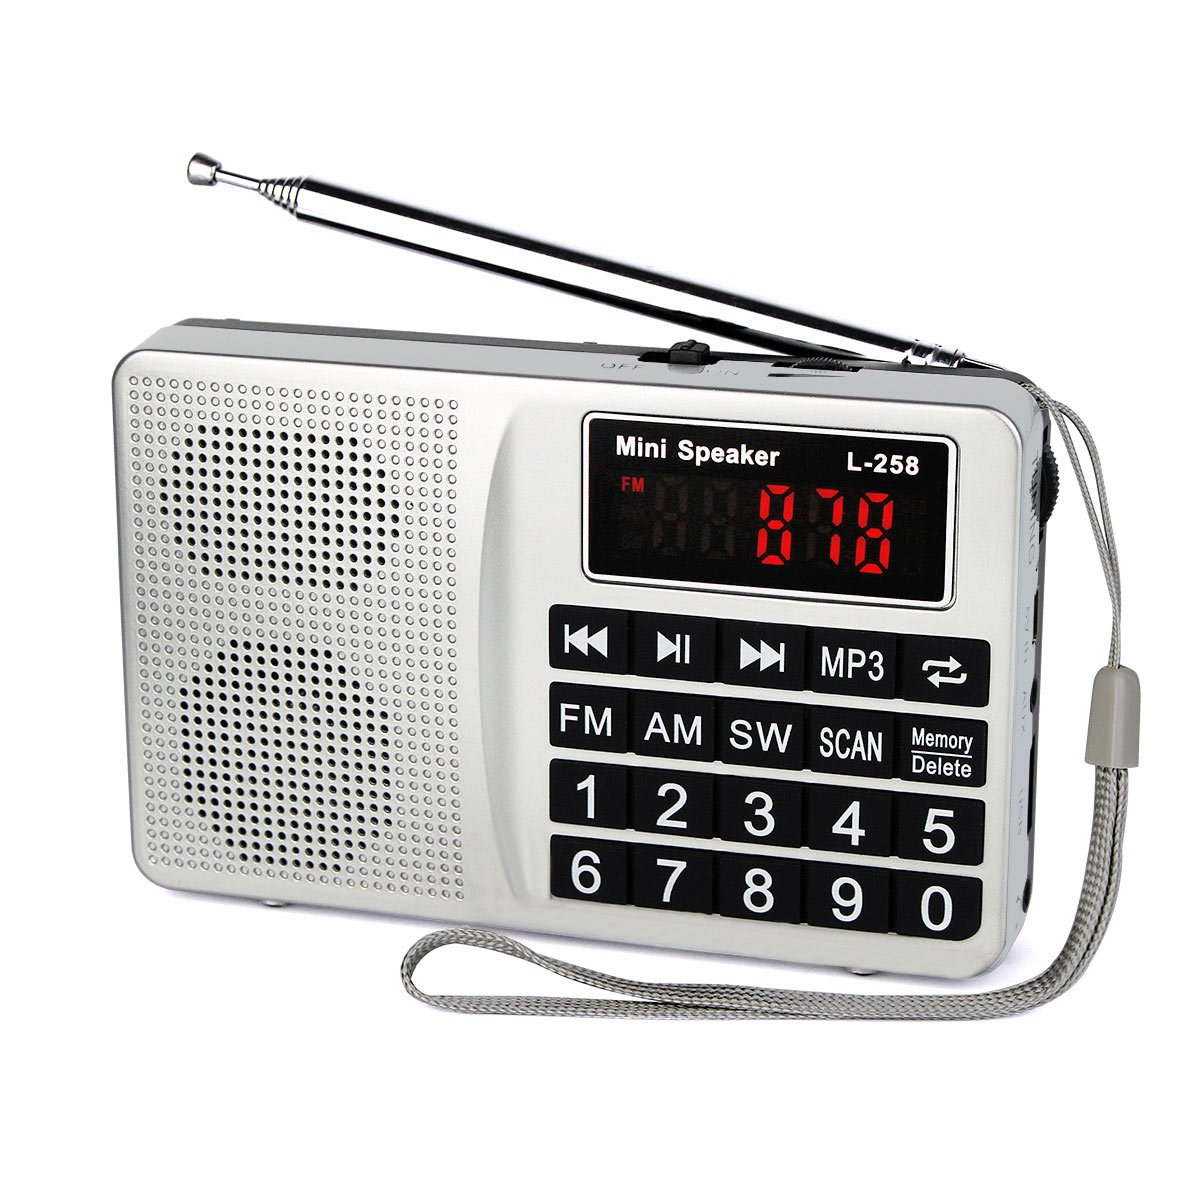 Tivdio L 258 Portable Am Fm Radio Shortwave Transistor How To Build 2 Voice Transmitter Digital Display Support Micro Sd Card Usb Driver Aux Input Mp3 Player Speaker